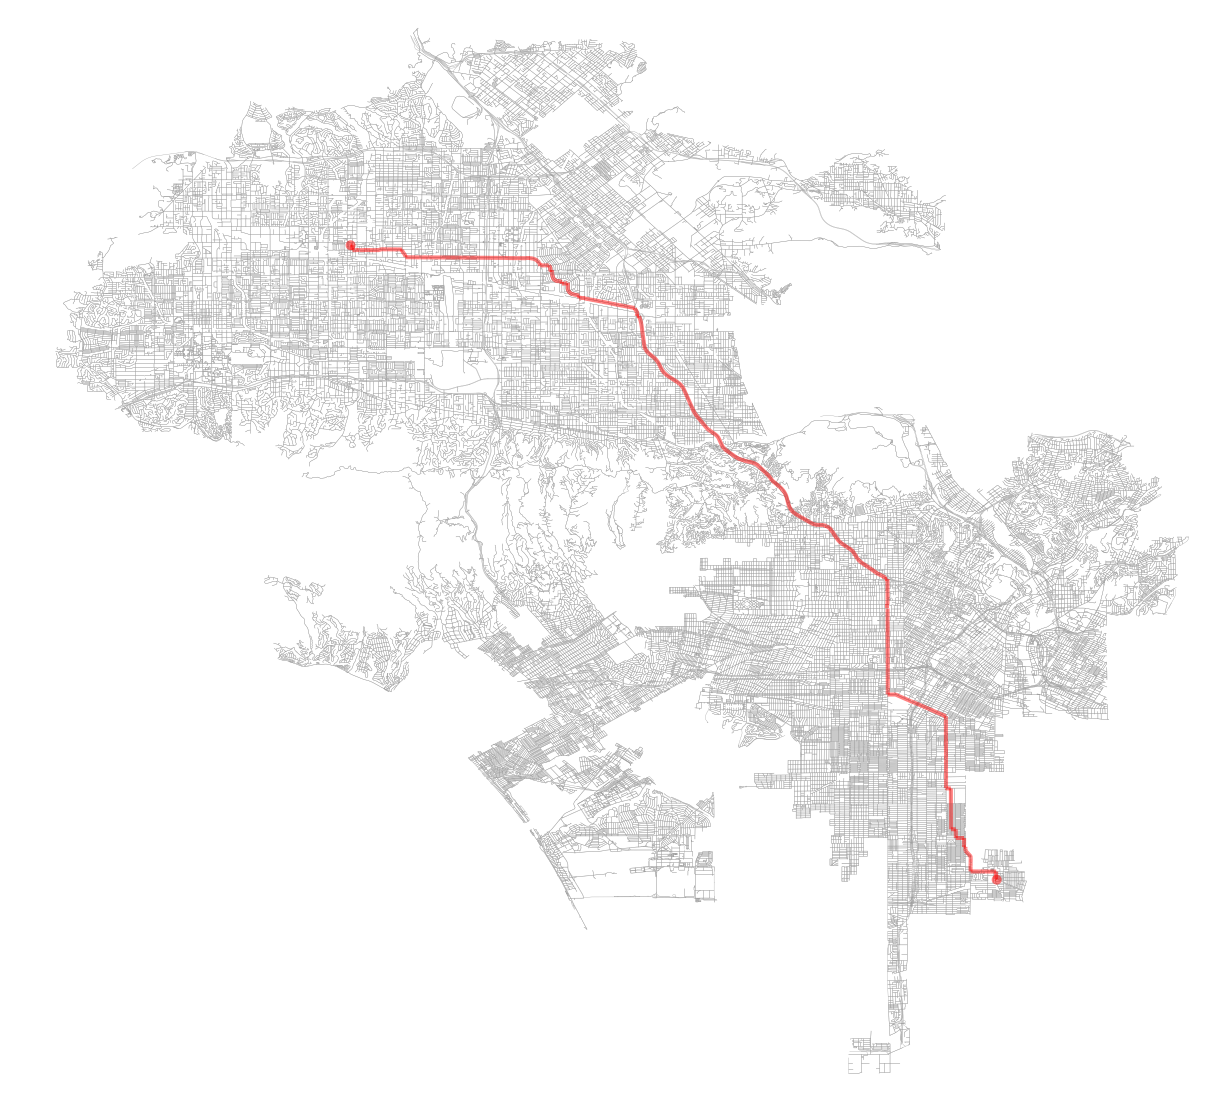 Figure 1. OSMnx retrieves the street network for Los Angeles, California and plots a shortest-path route along it.